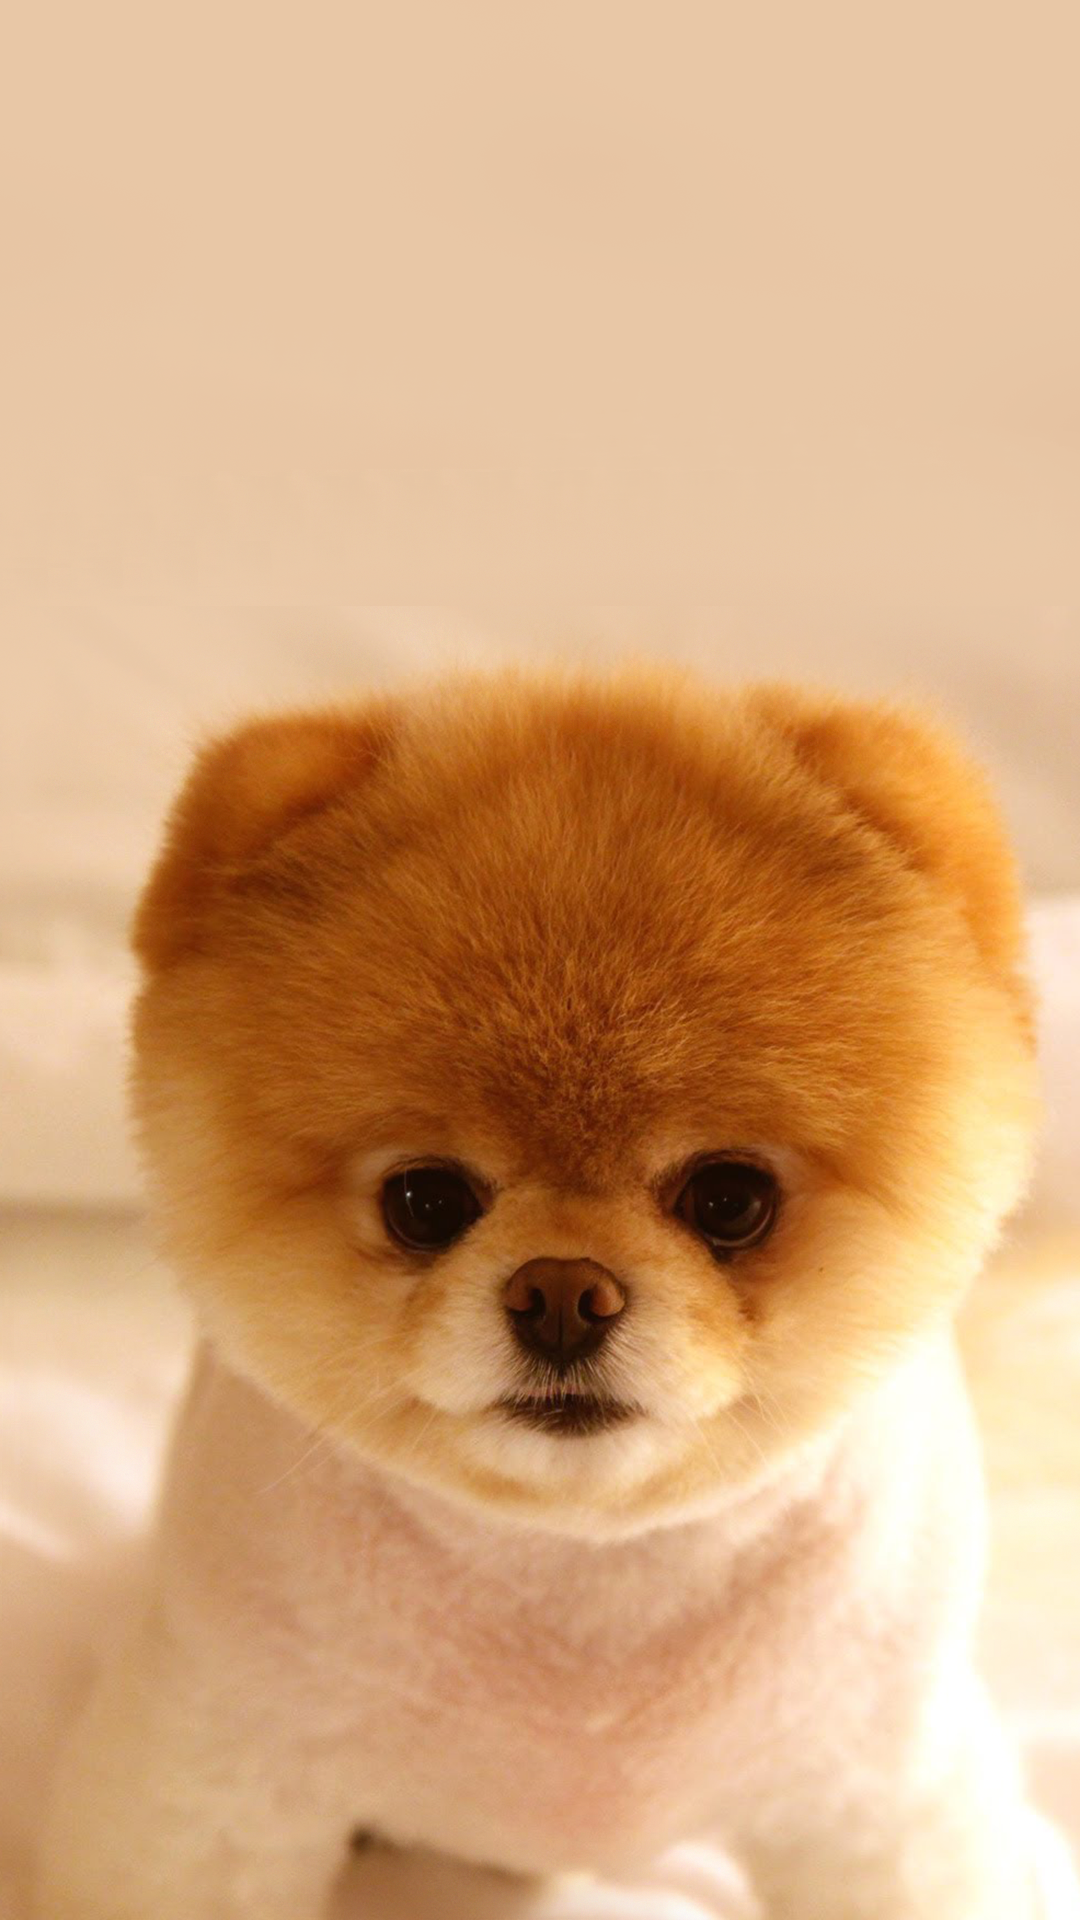 Ultra HD Cutest Puppy Dog Wallpaper For Your Mobile Phone